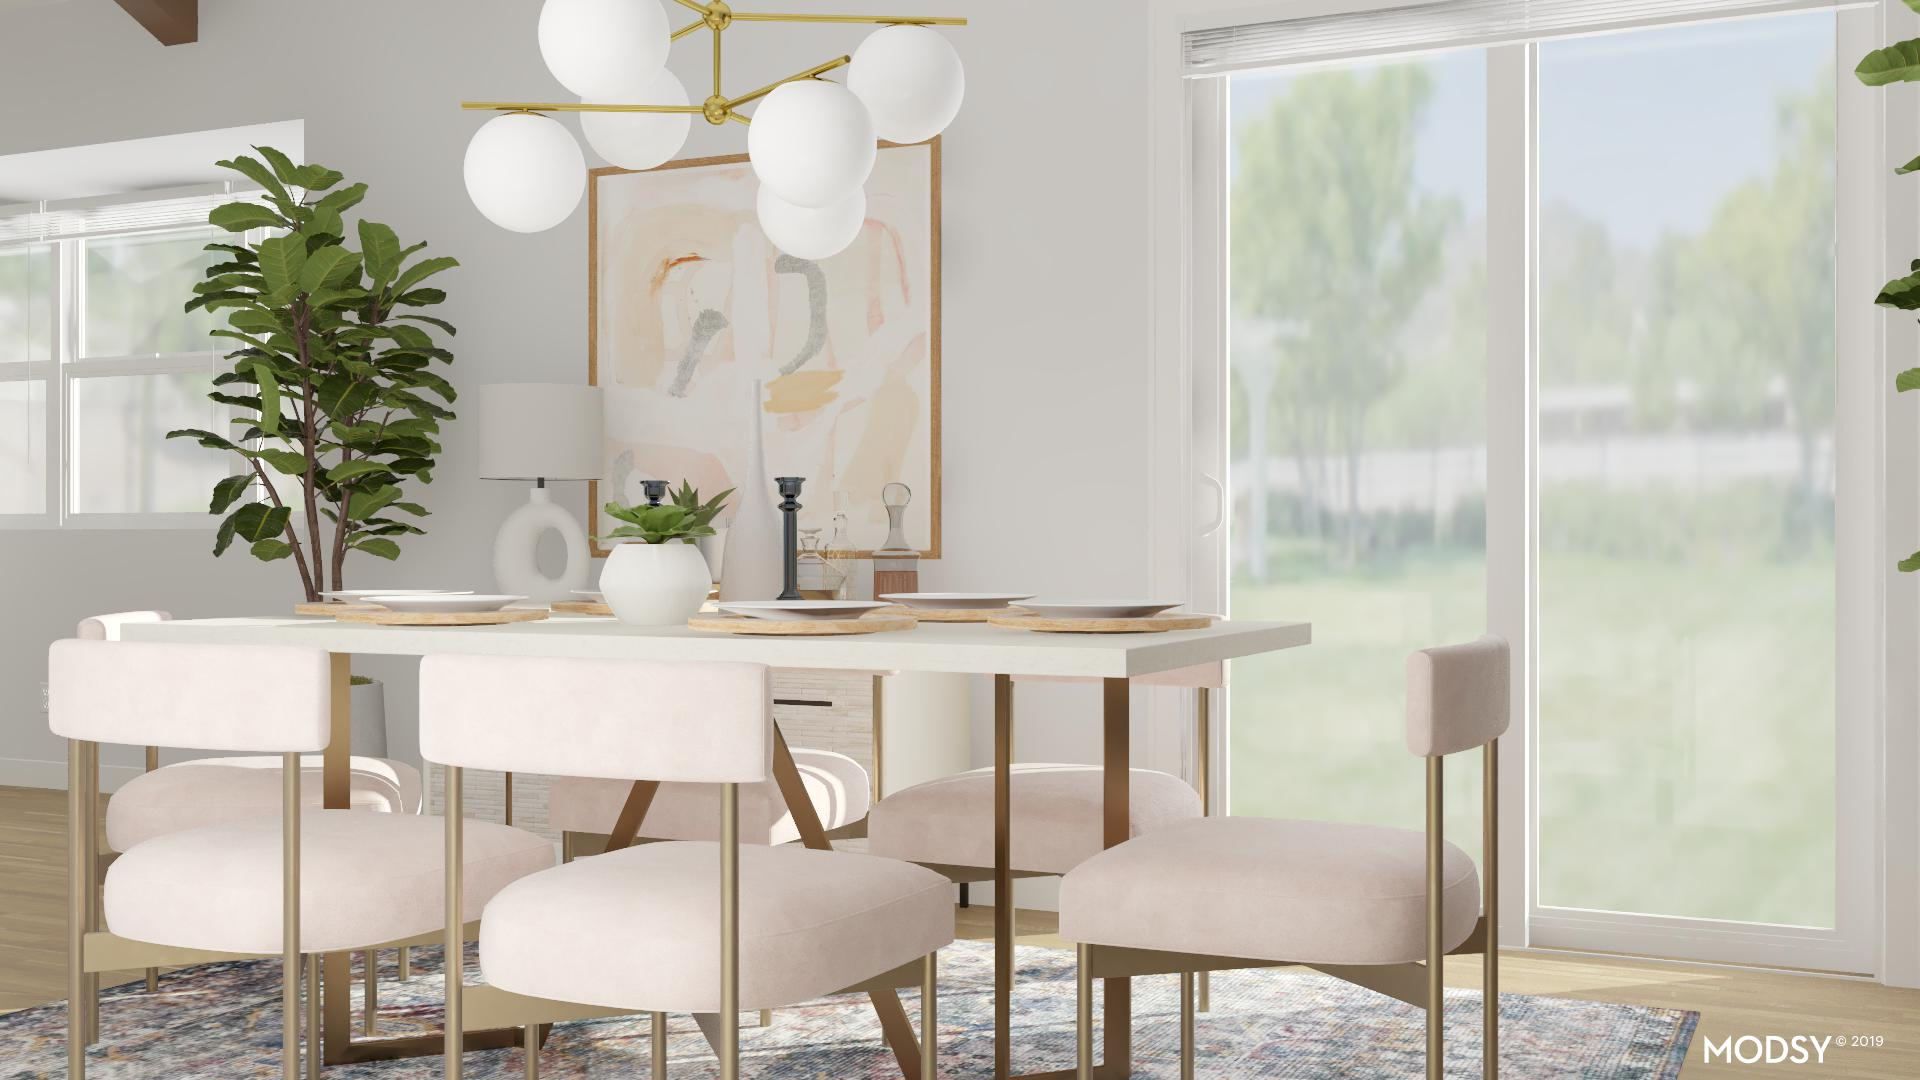 Glass Dining Table Design Ideas And Styles From Modsy Designers